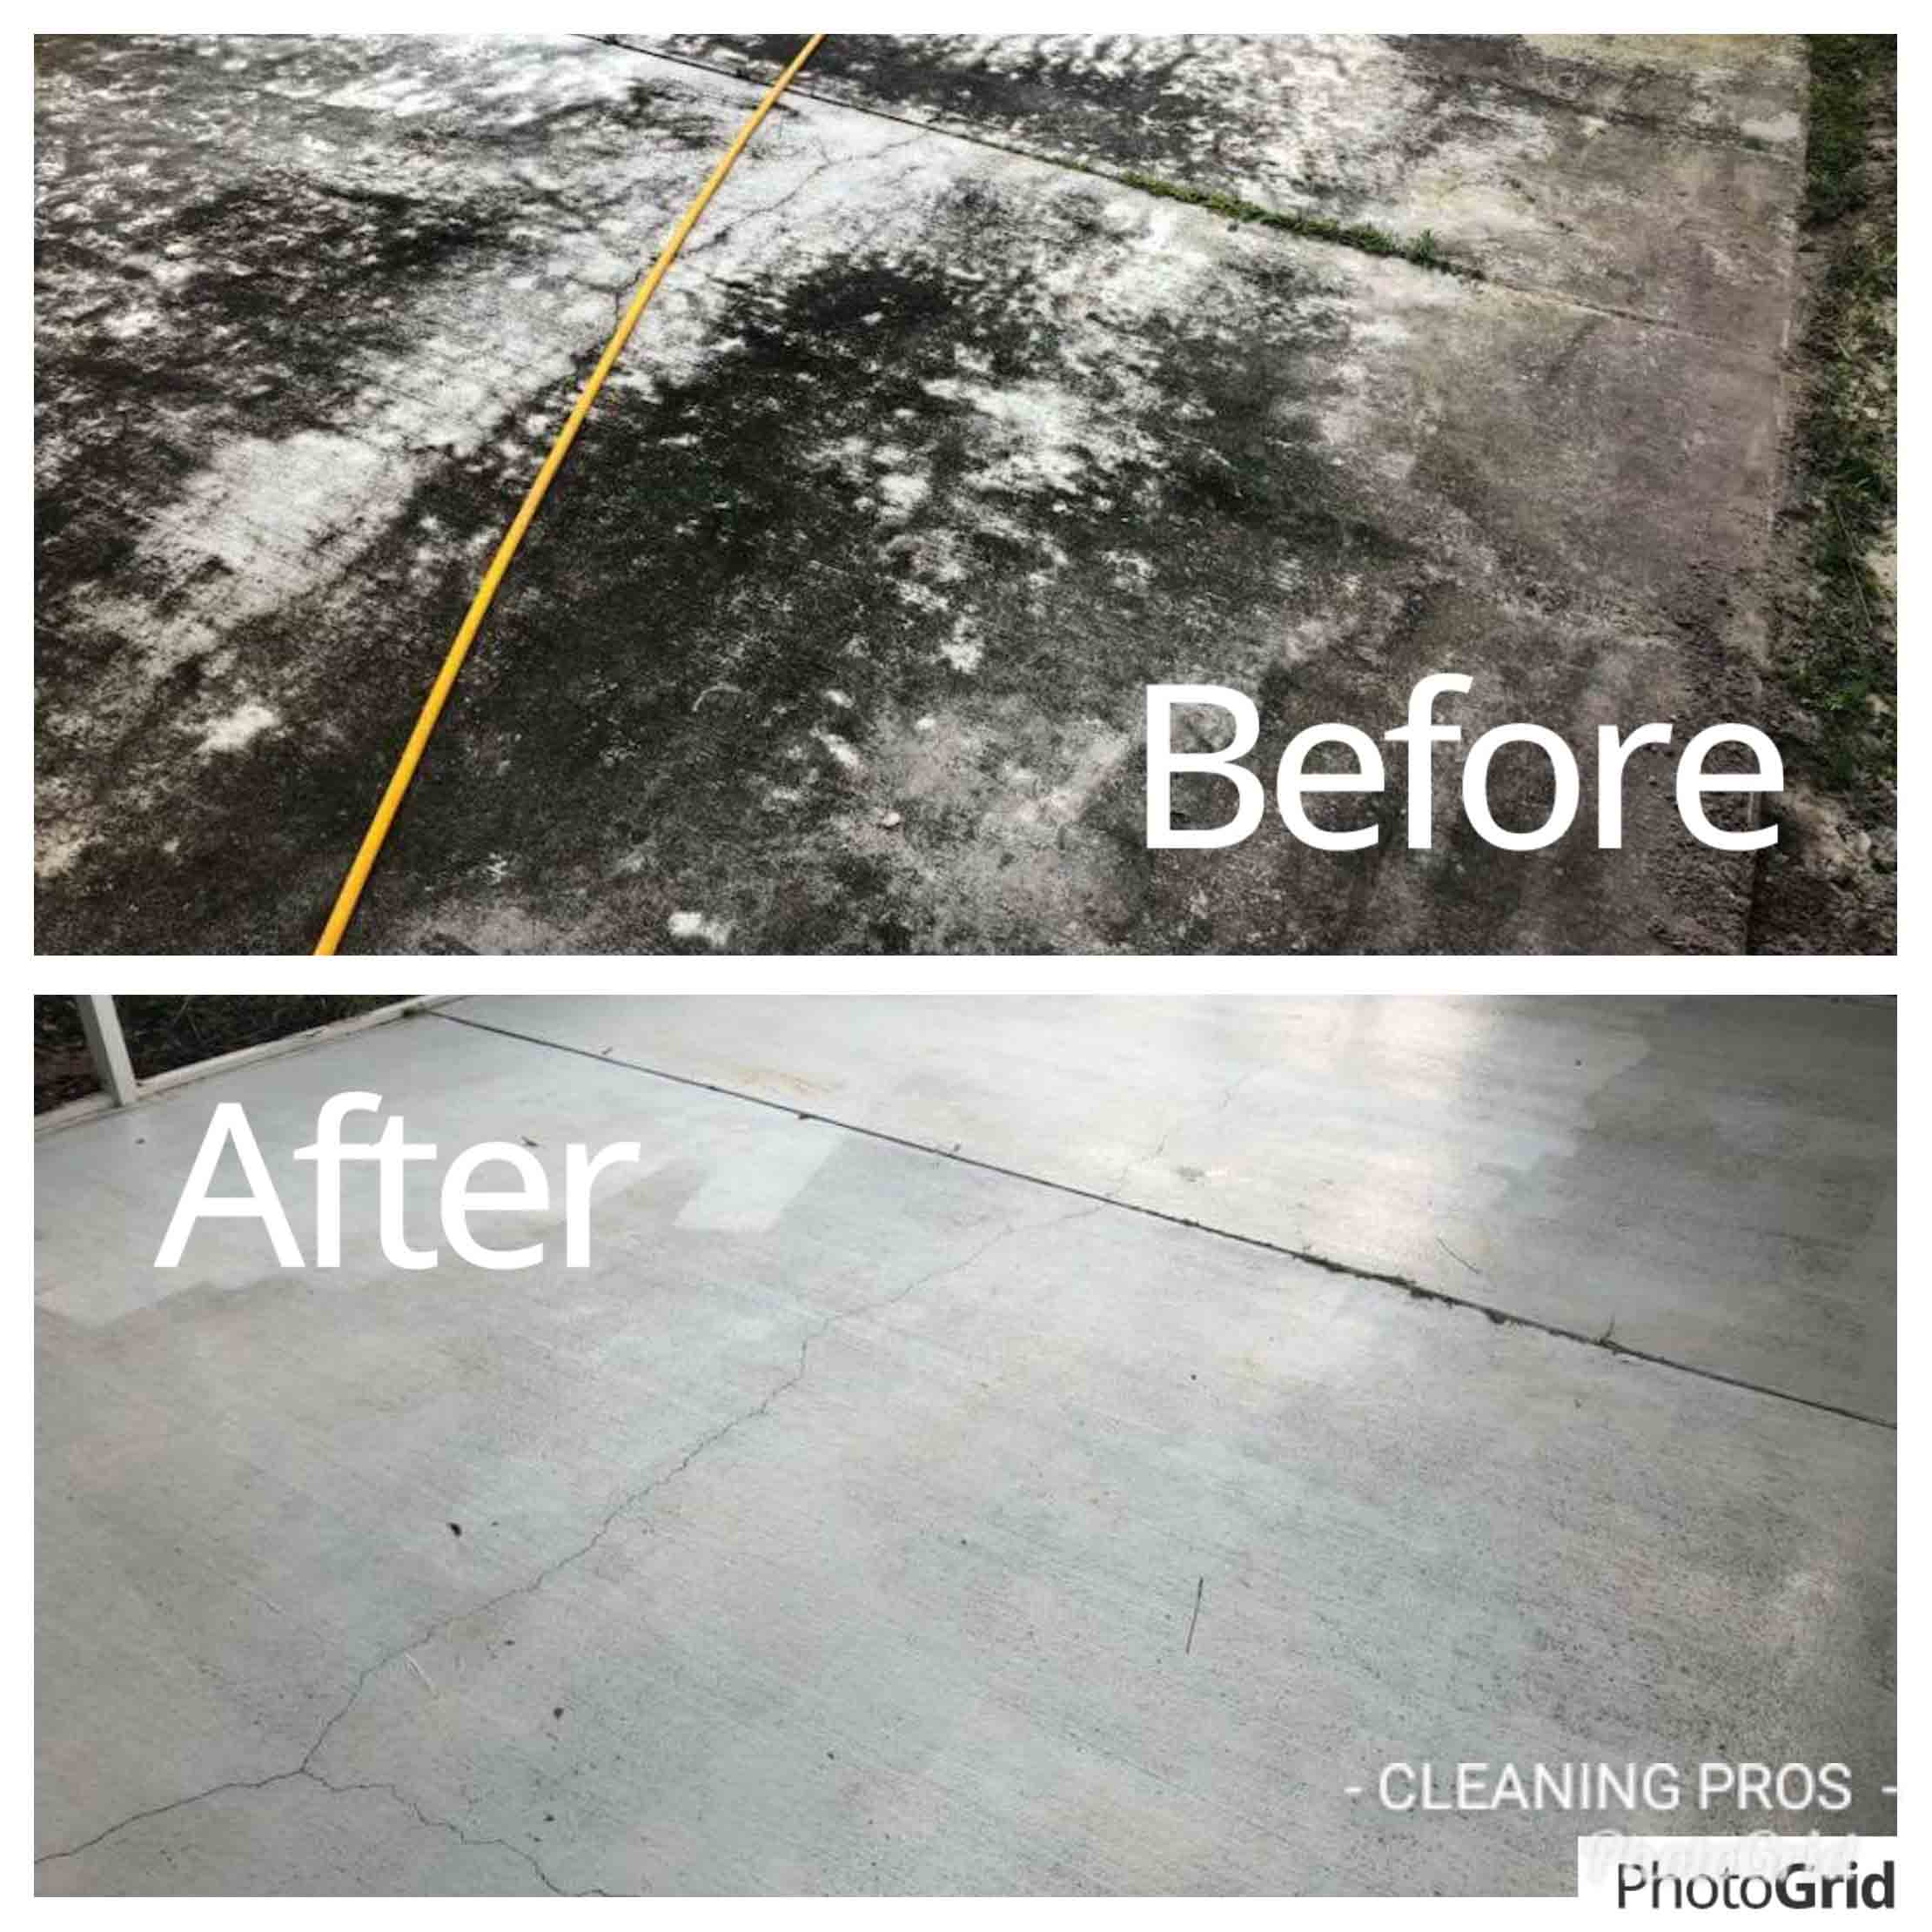 Concrete Cleaning Service in Maitland, FL